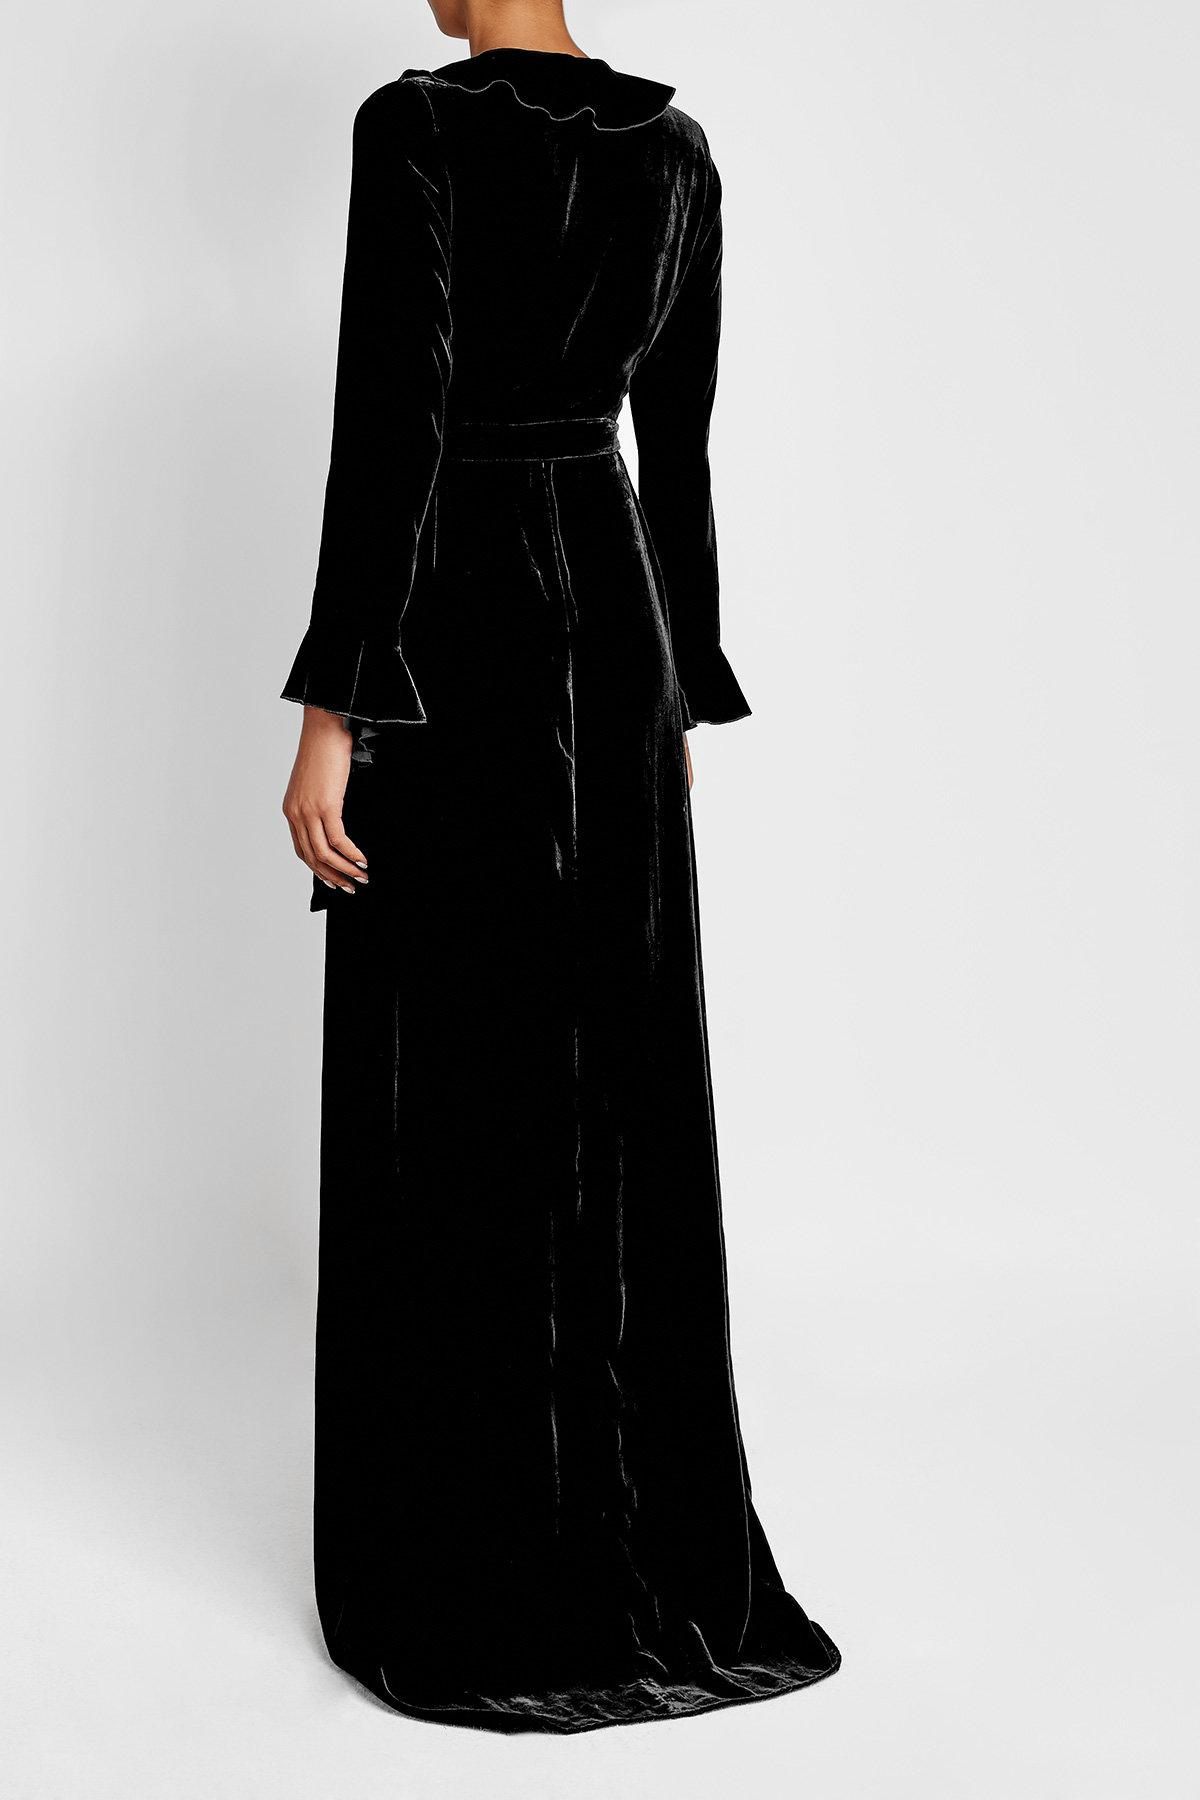 Lyst - Dhela Velvet Gown With Ruffled Trims in Black